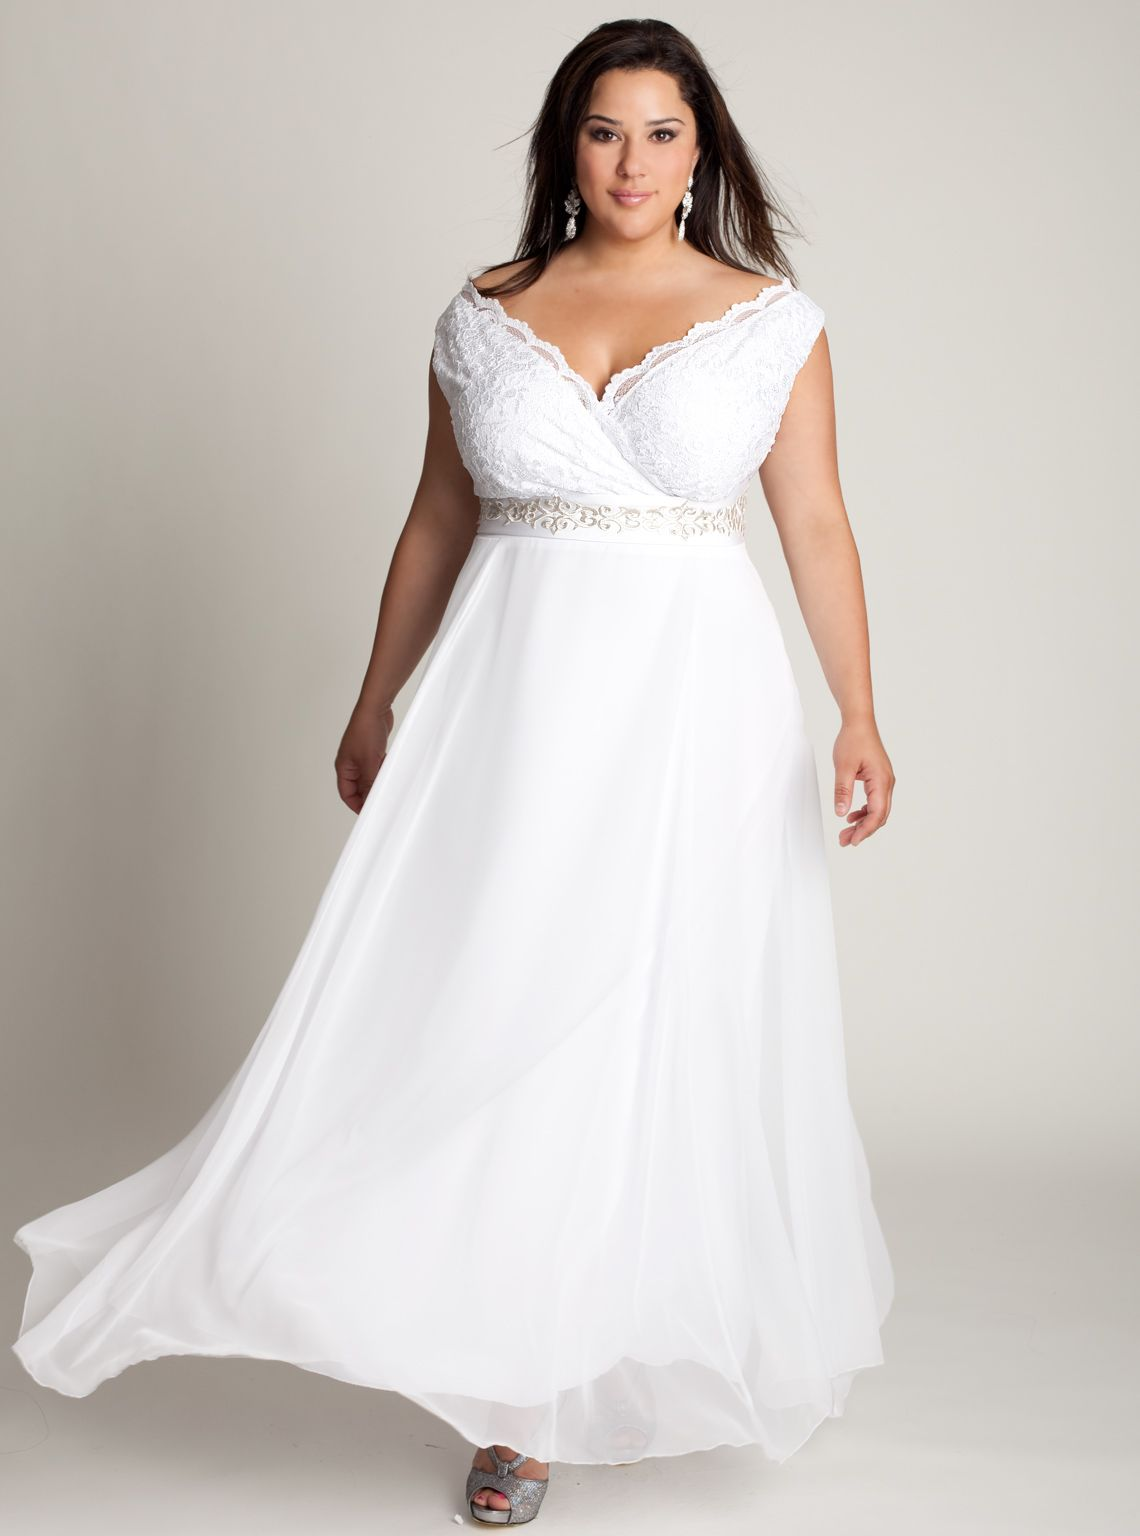 IGIGI Plus Size Charming Romance Wedding Gown in 2019 | Plus ...